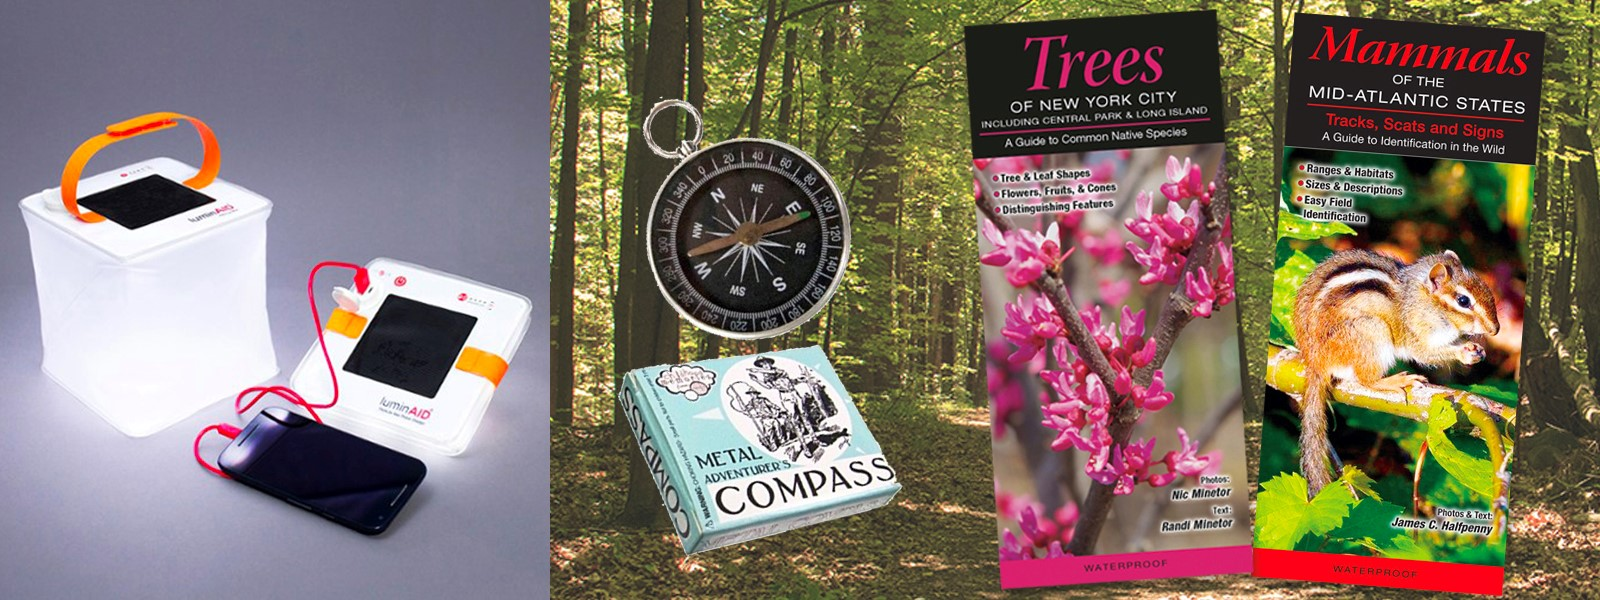 Father's Day Gift: Nature Lover with compass and guides for local trees and mammals and solar powered light and cell phone charger